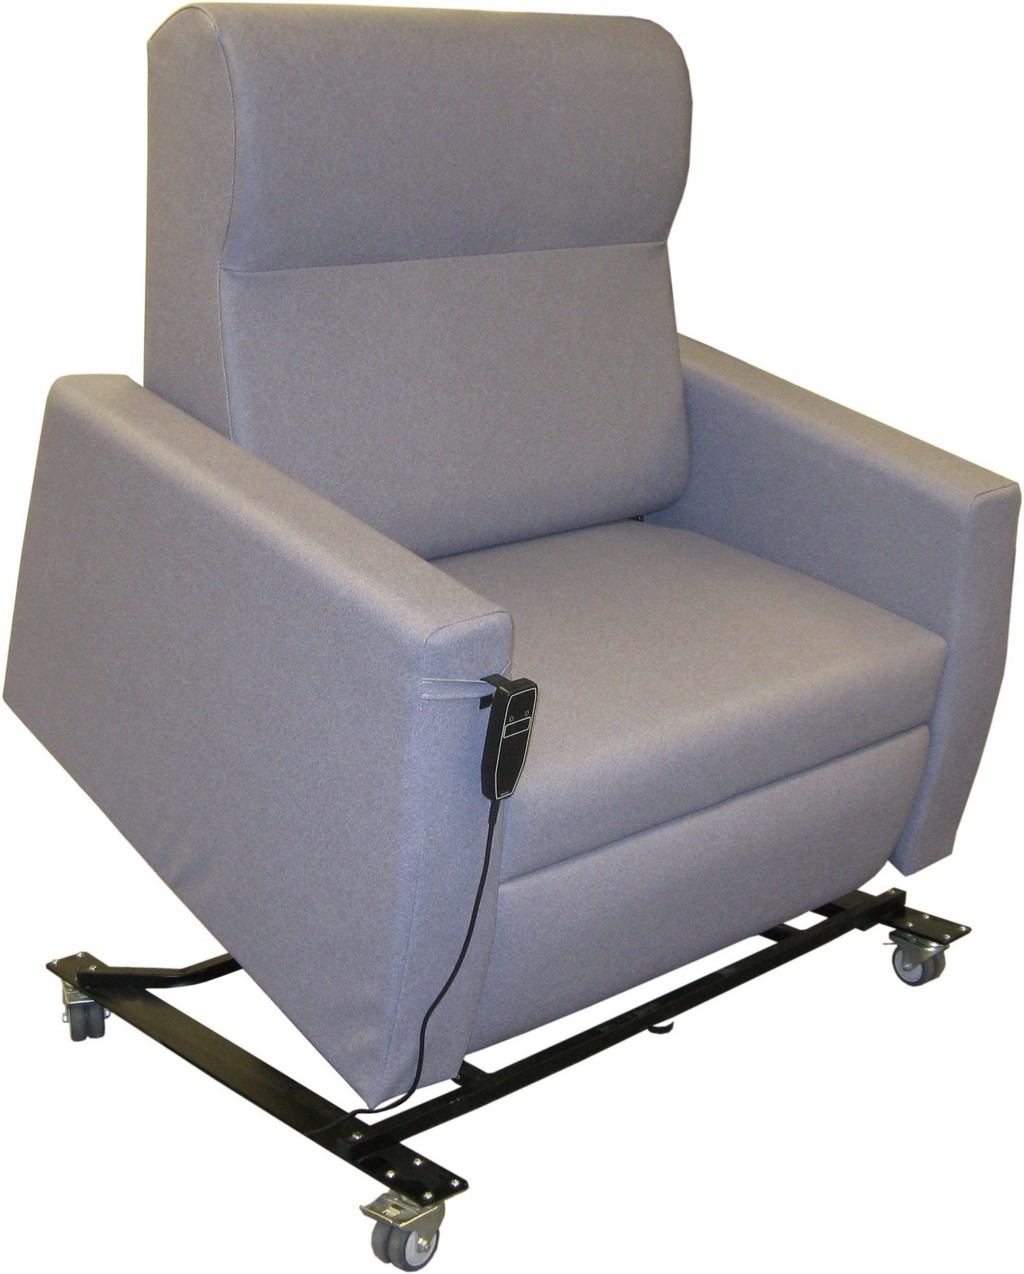 wheelchair assistance lift chairs covered by medicare